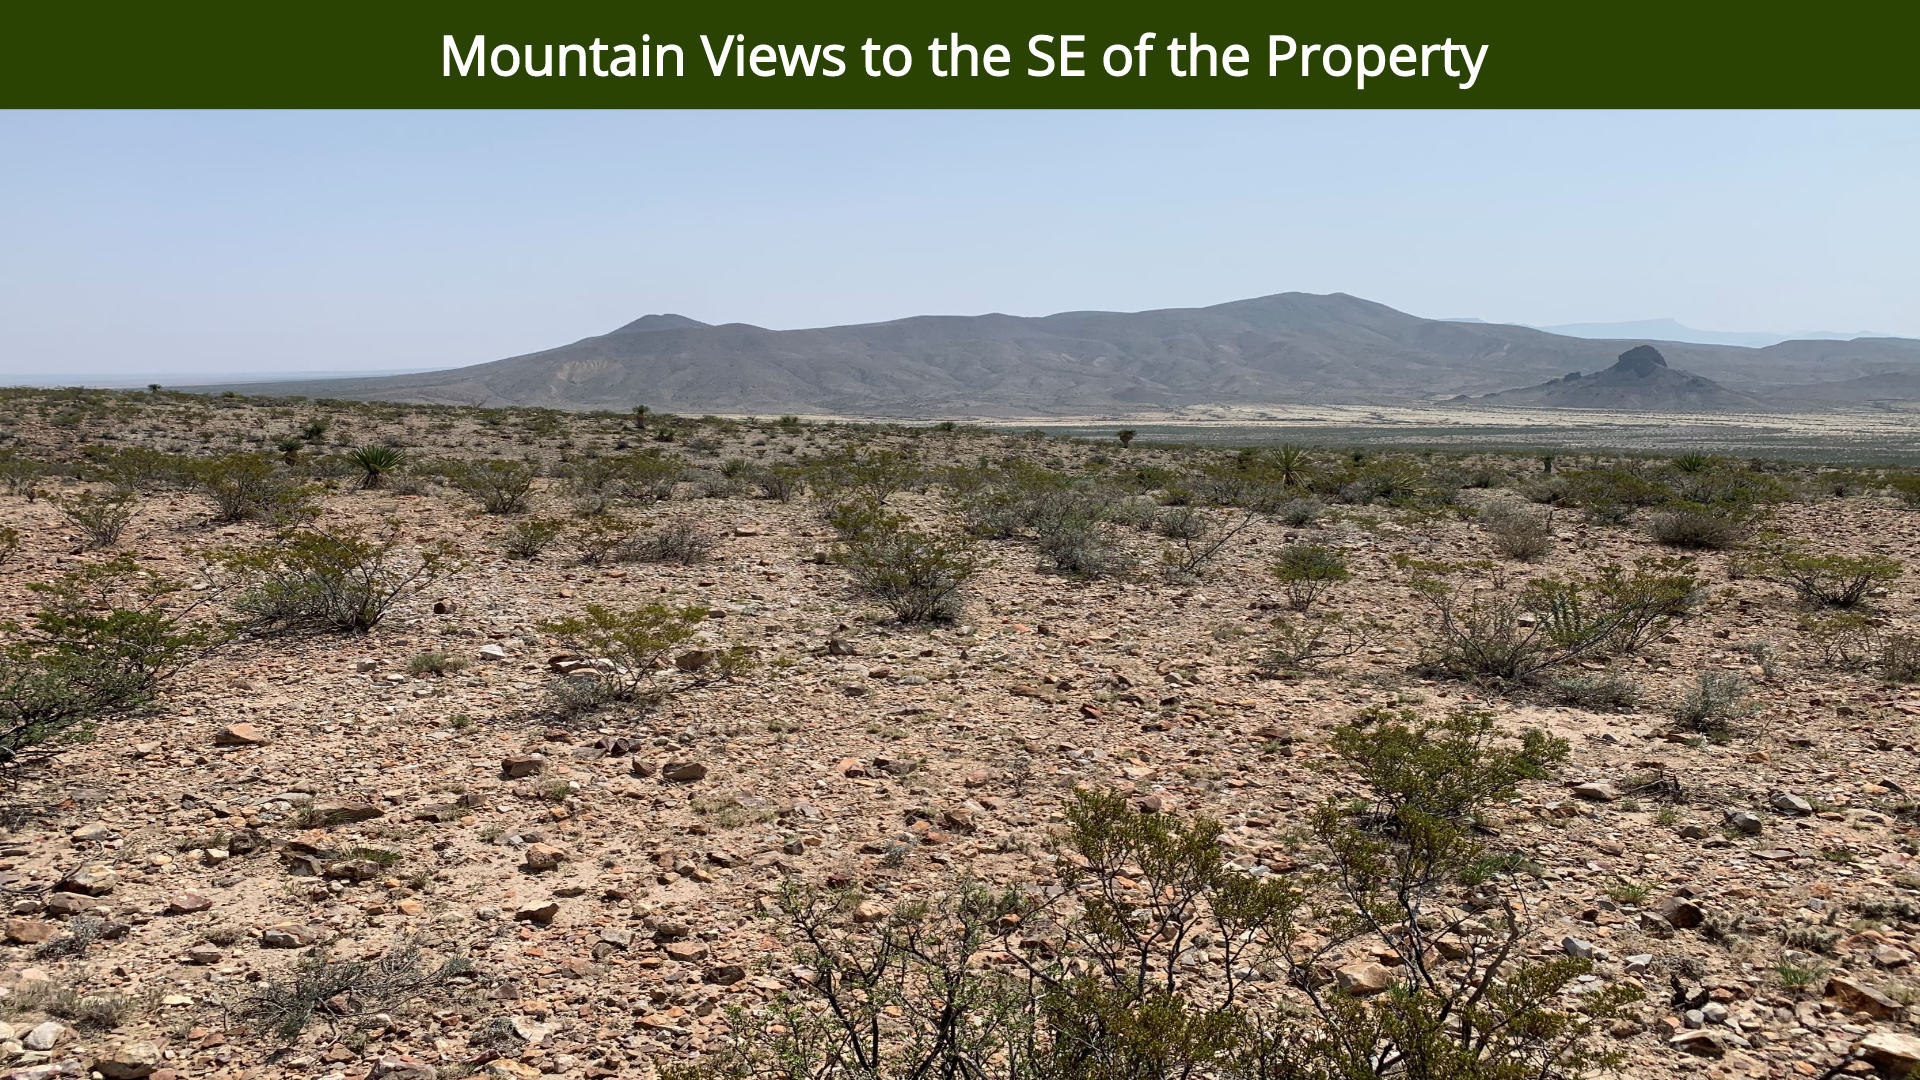 Mountain Views to the SE of the Property